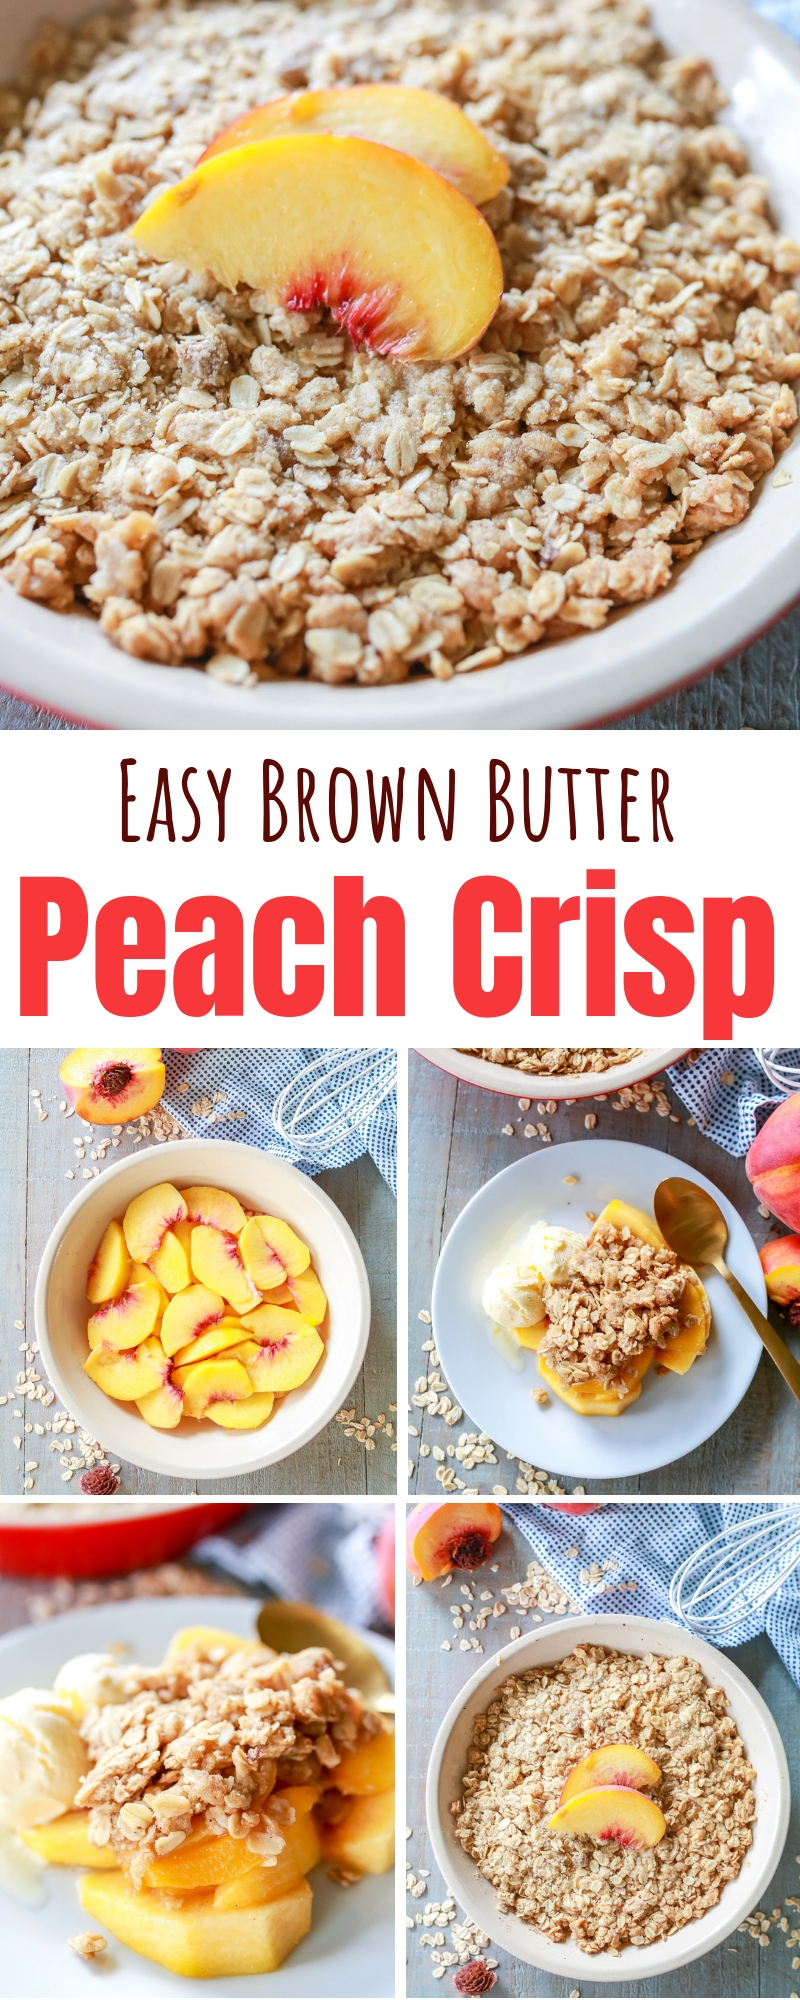 Peach Crisp that is SOOOO good!!! And the brown butter is made in the microwave so it's crazy easy to make too! Love this recipe so much!